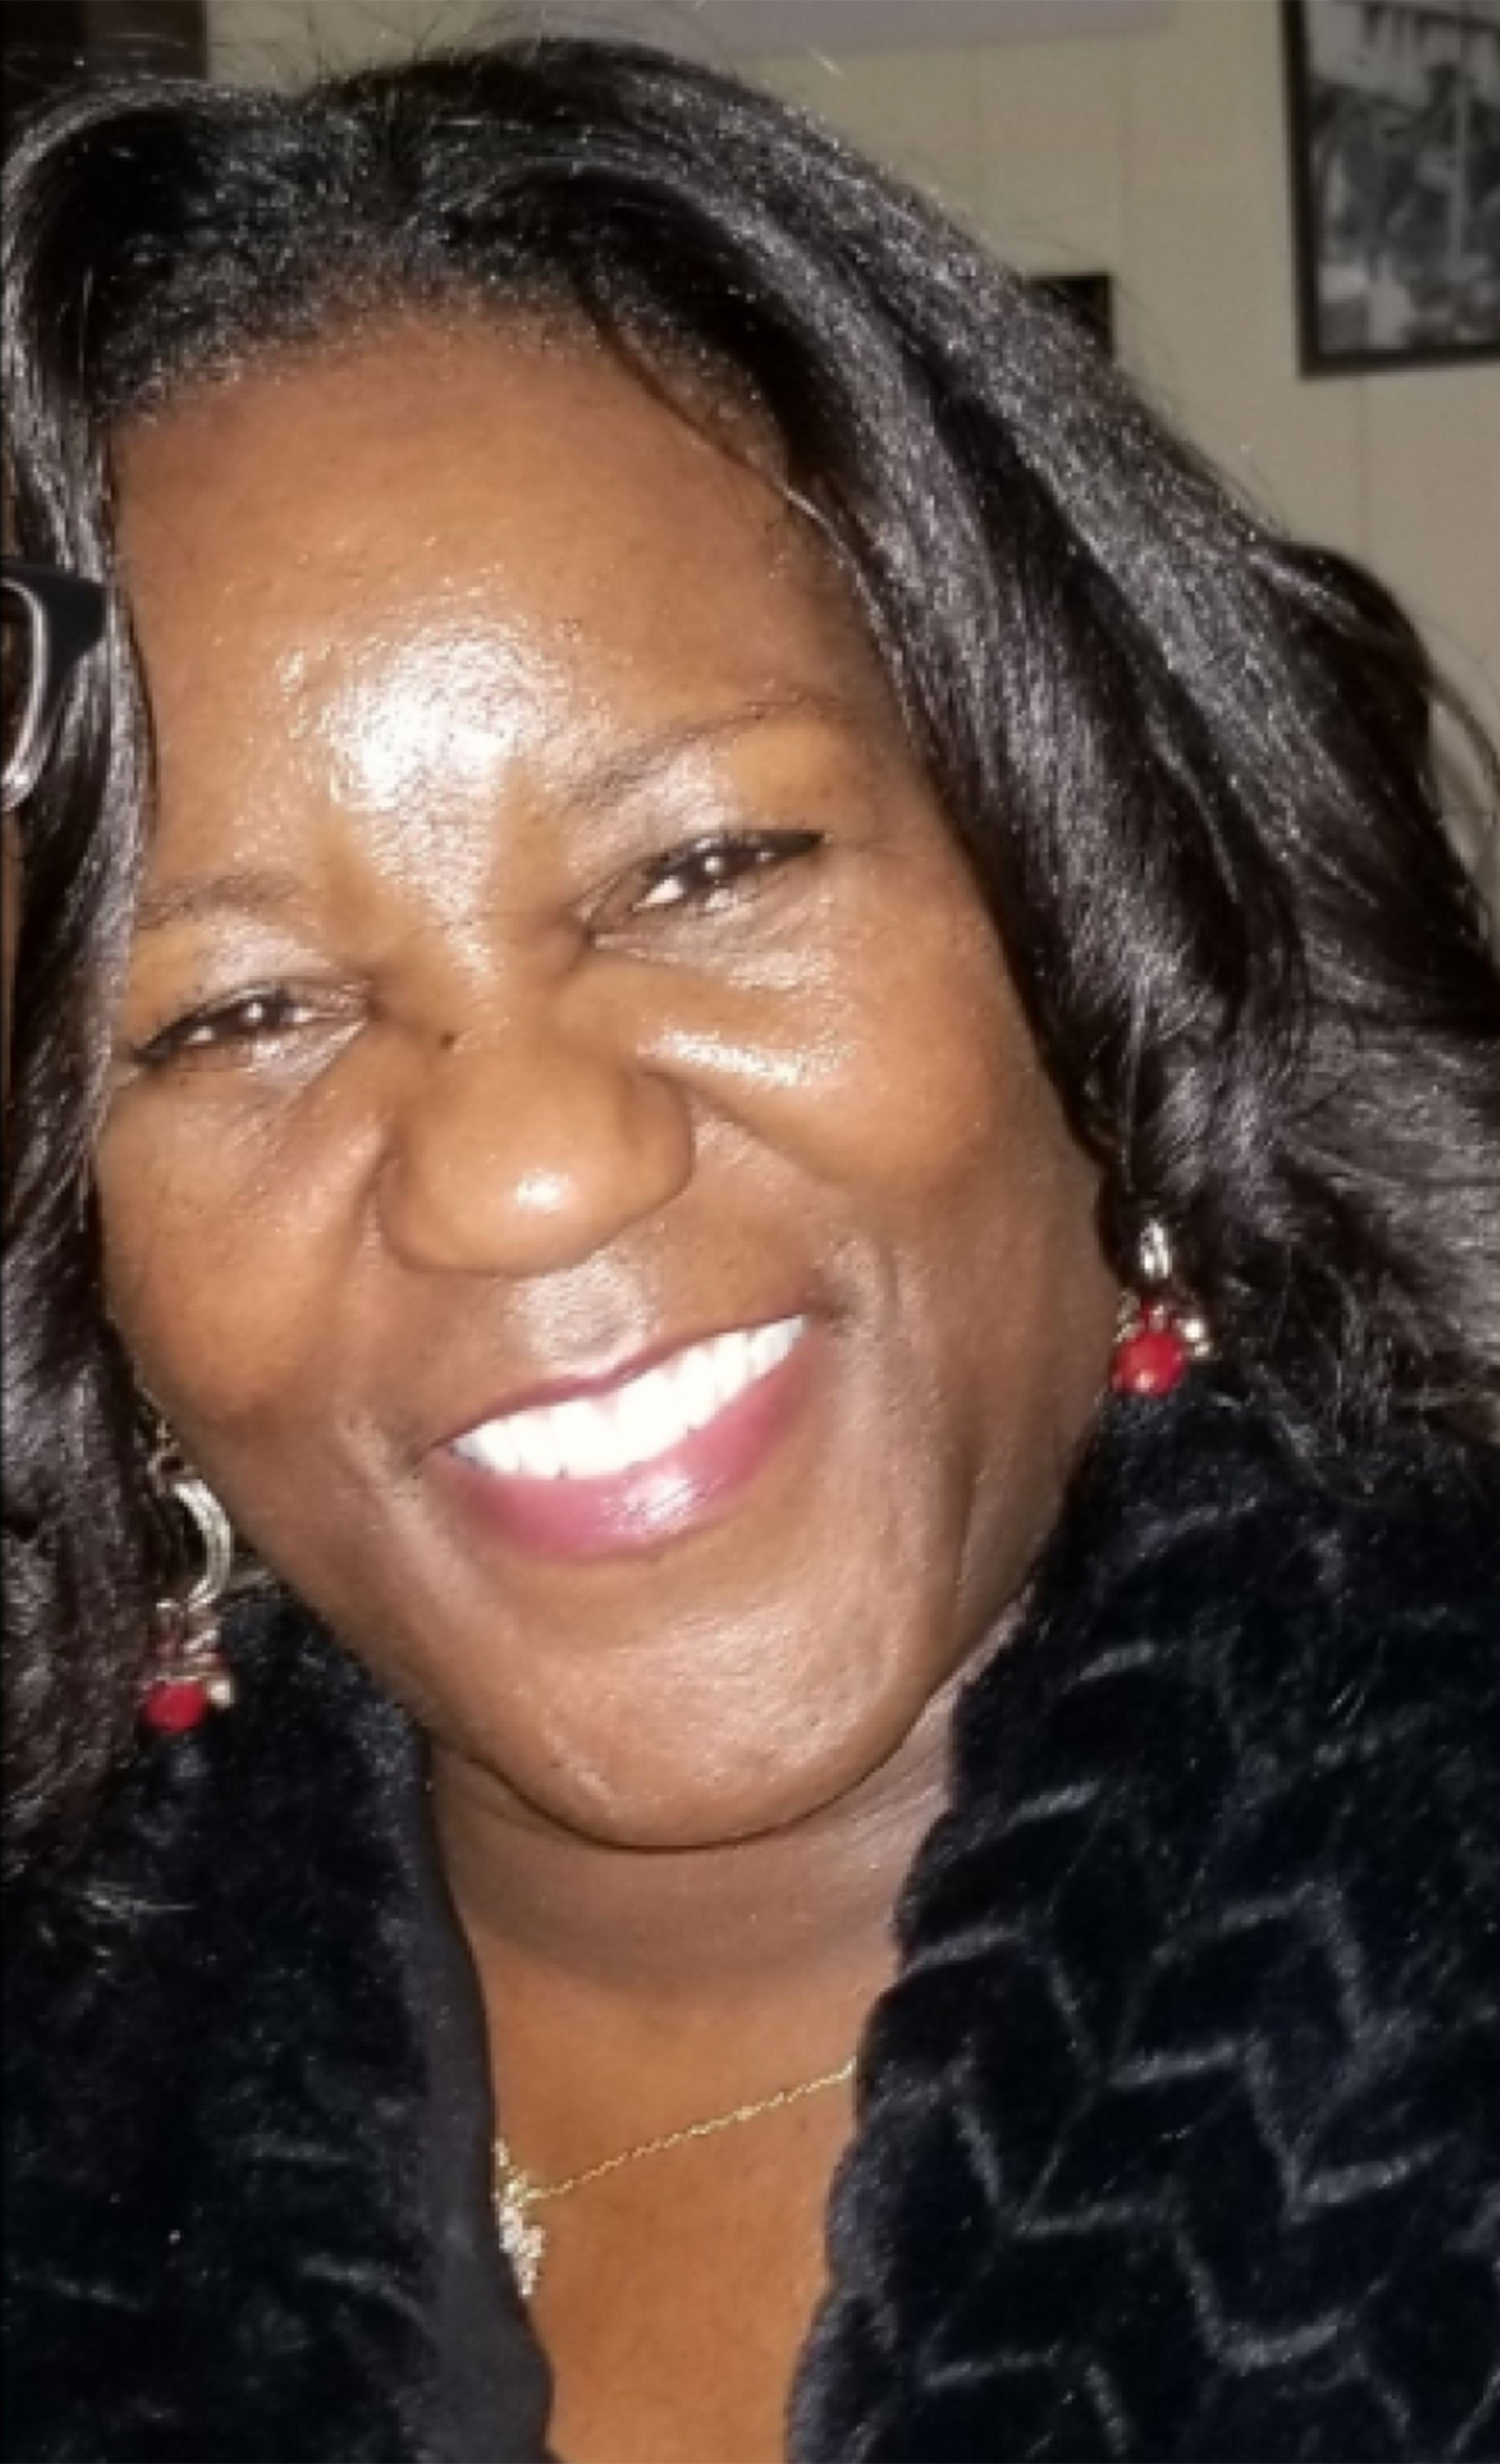 Good Samaritan Killed After Opening Car Woman to Help Woman Holding 'Help Me Feed My Baby' Sign